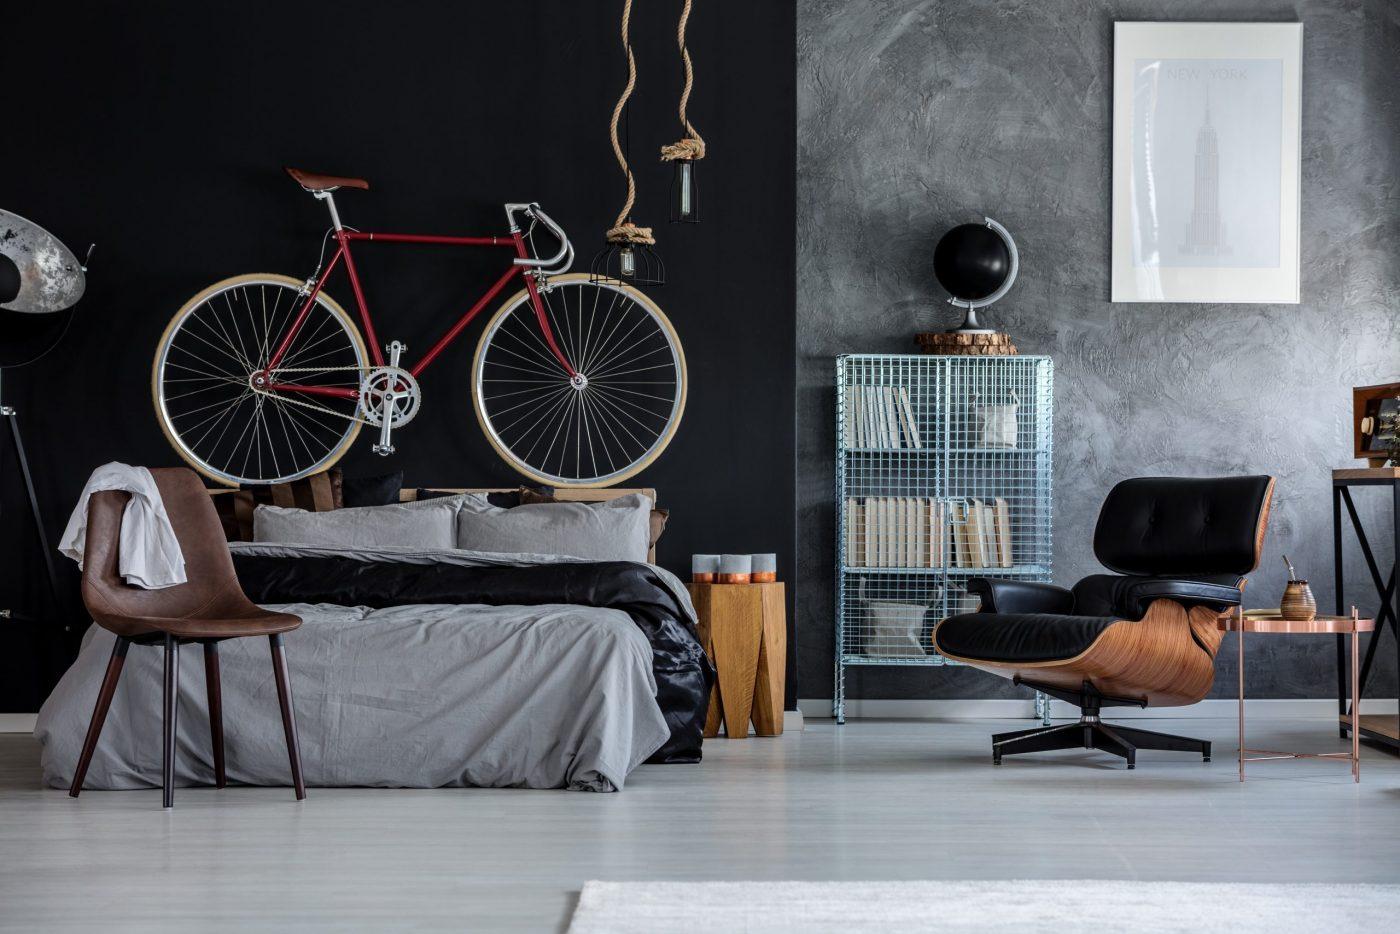 bedroom-with-bicycle-PRM6MYX-scaled.jpg